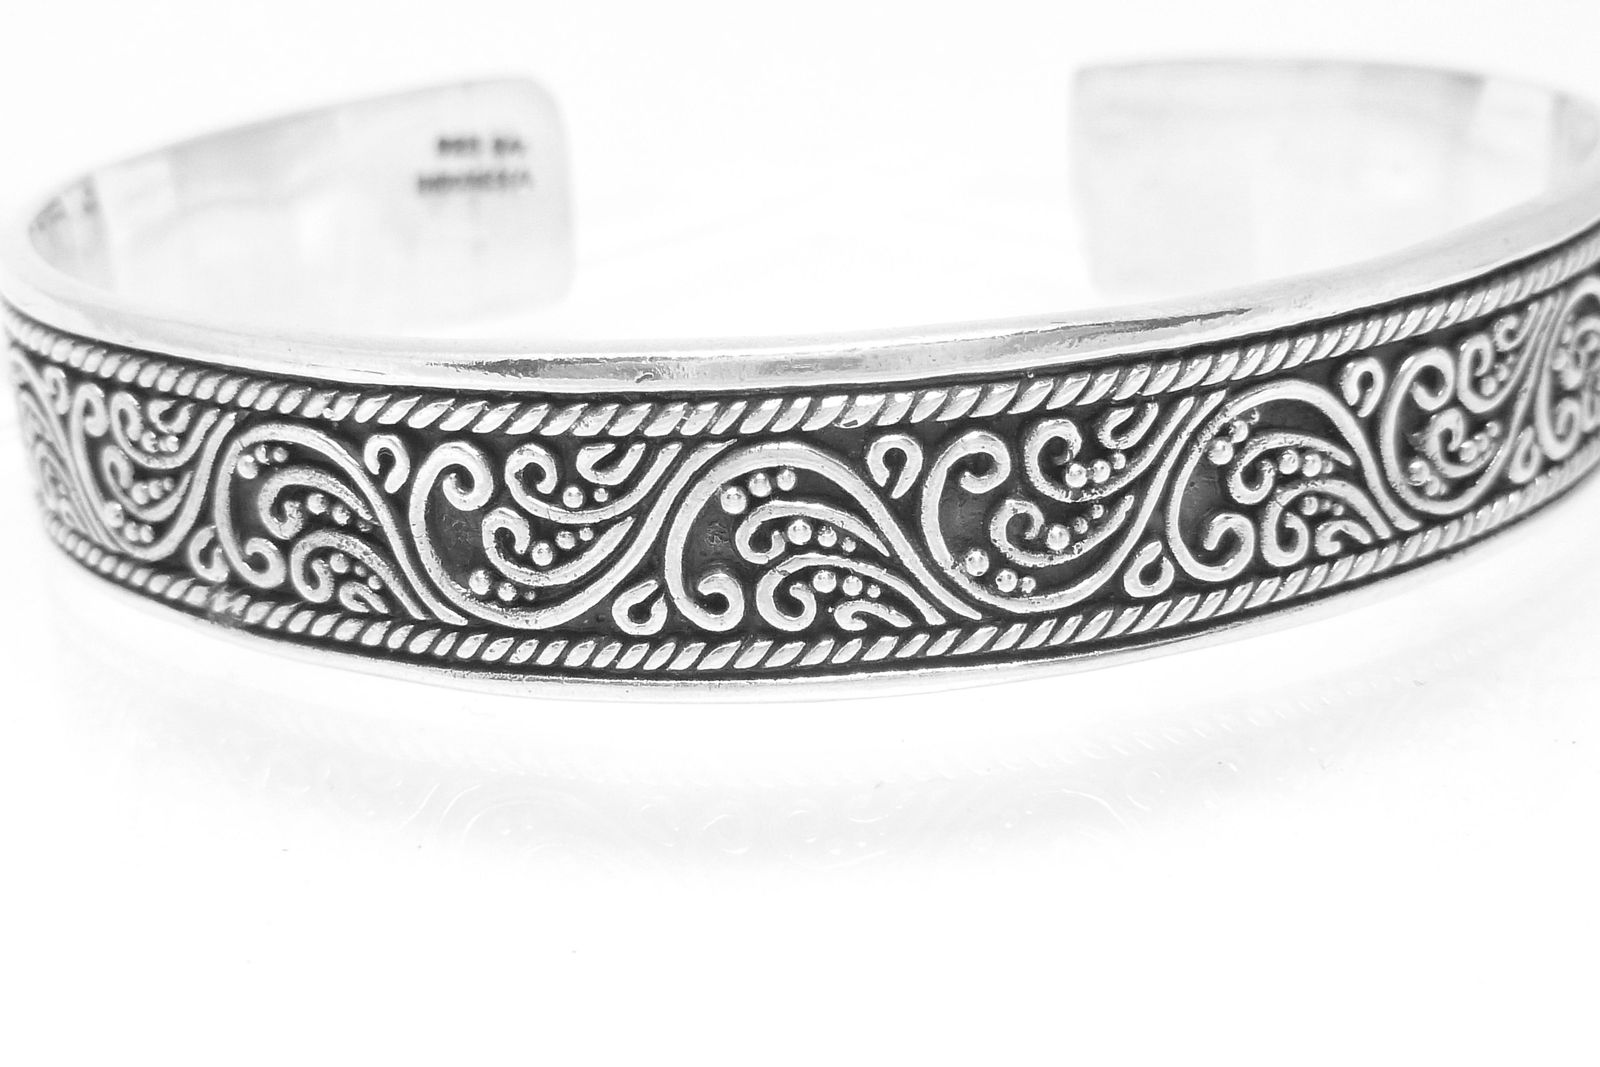 Artisan Crafted Sterling Silver Oxidized Filigree Cuff Bracelet 7""